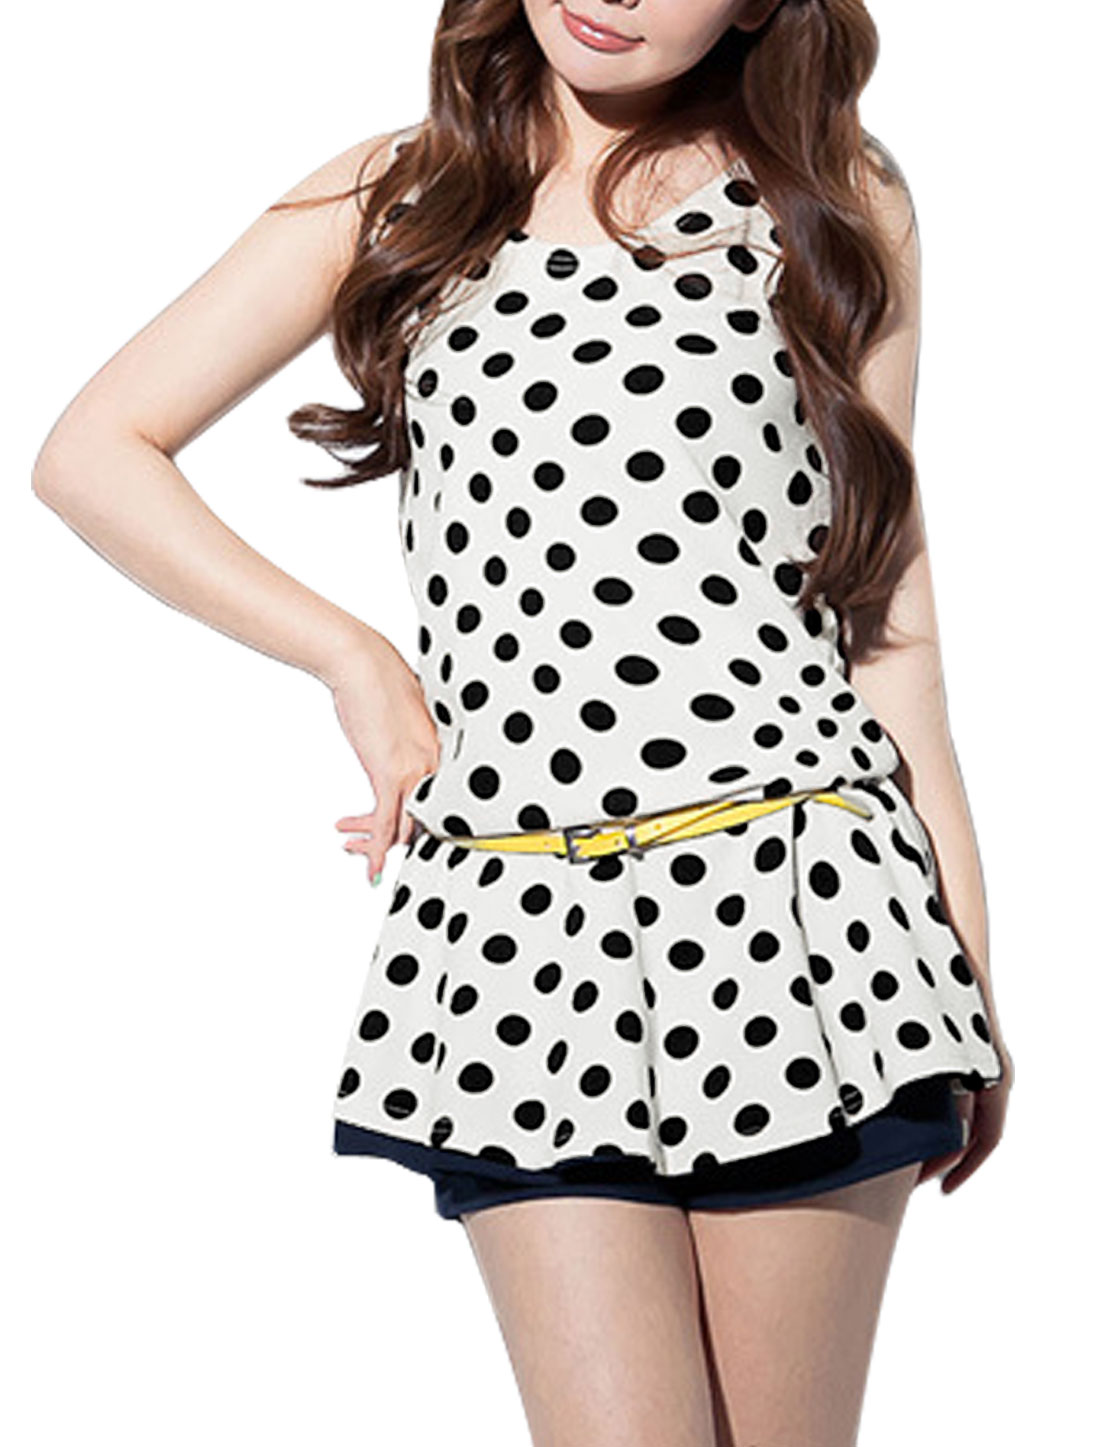 Women Simple Round Neck Sleeveless Dots Prints Peplum Top White S